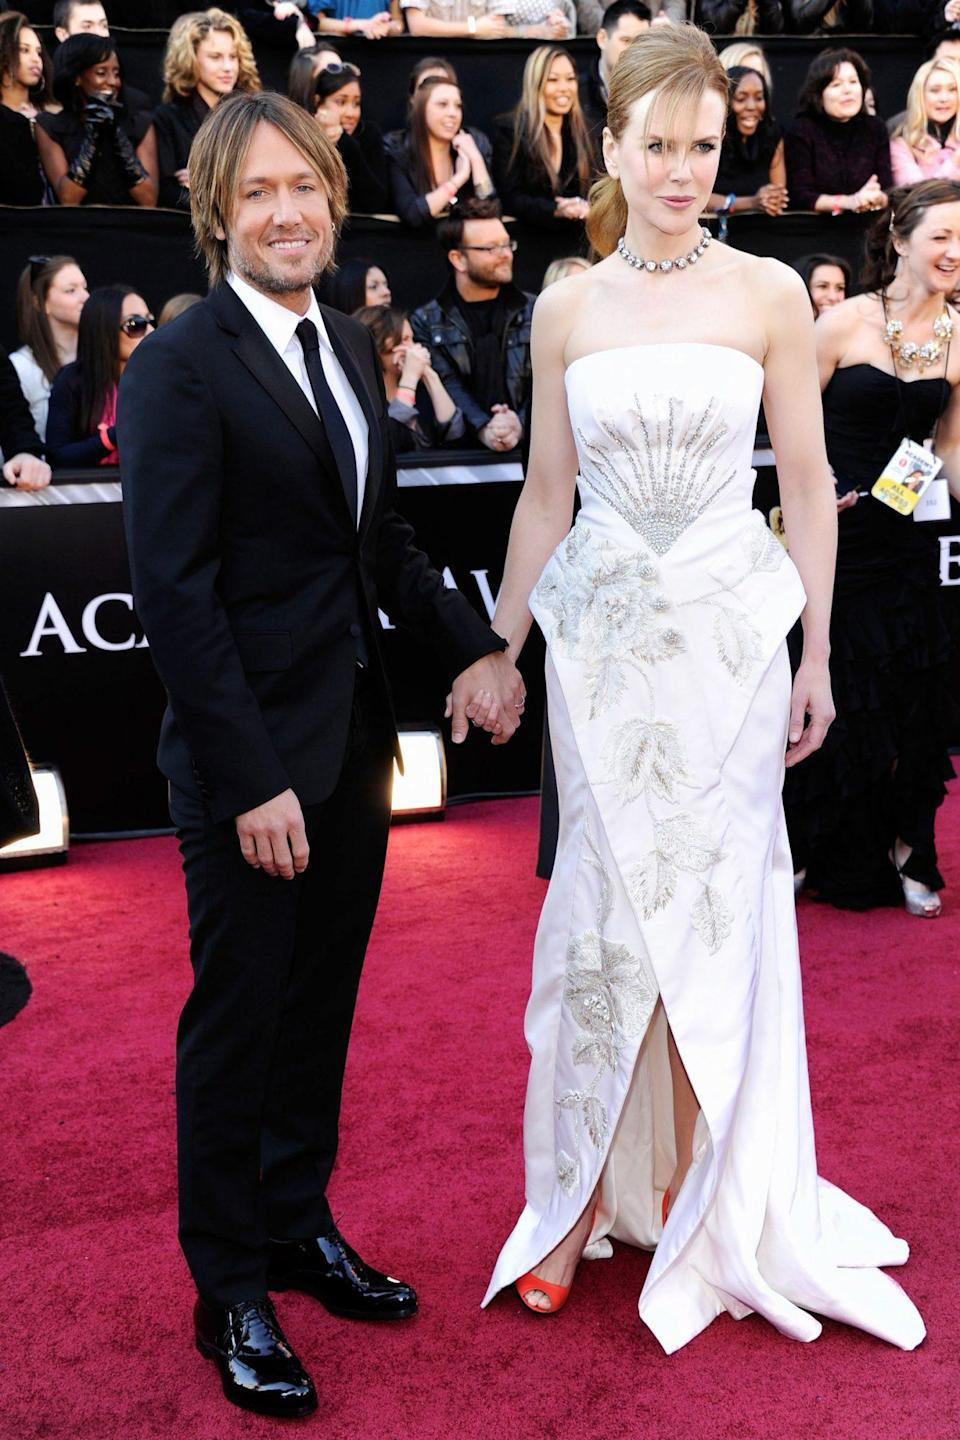 <p>Nicole Kidman brought her husband Keith Urban along as her date, and wore a beaded Dior gown for the occasion. She was nominated for Best Actress for <em>Rabbit Hole</em>. </p>